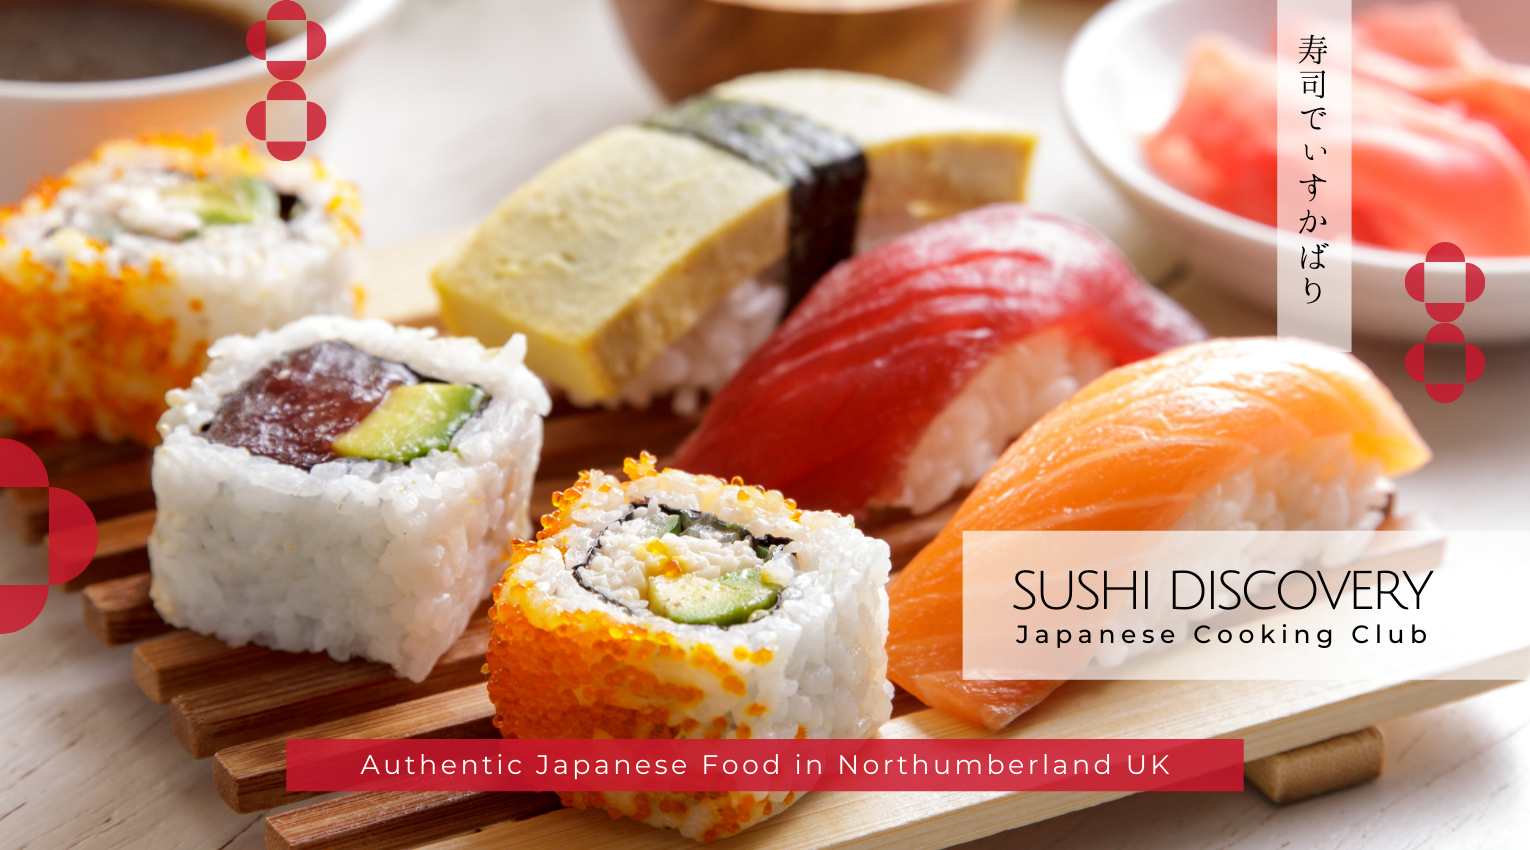 Sushi discovery authentic Japanese food in Northumberland UK